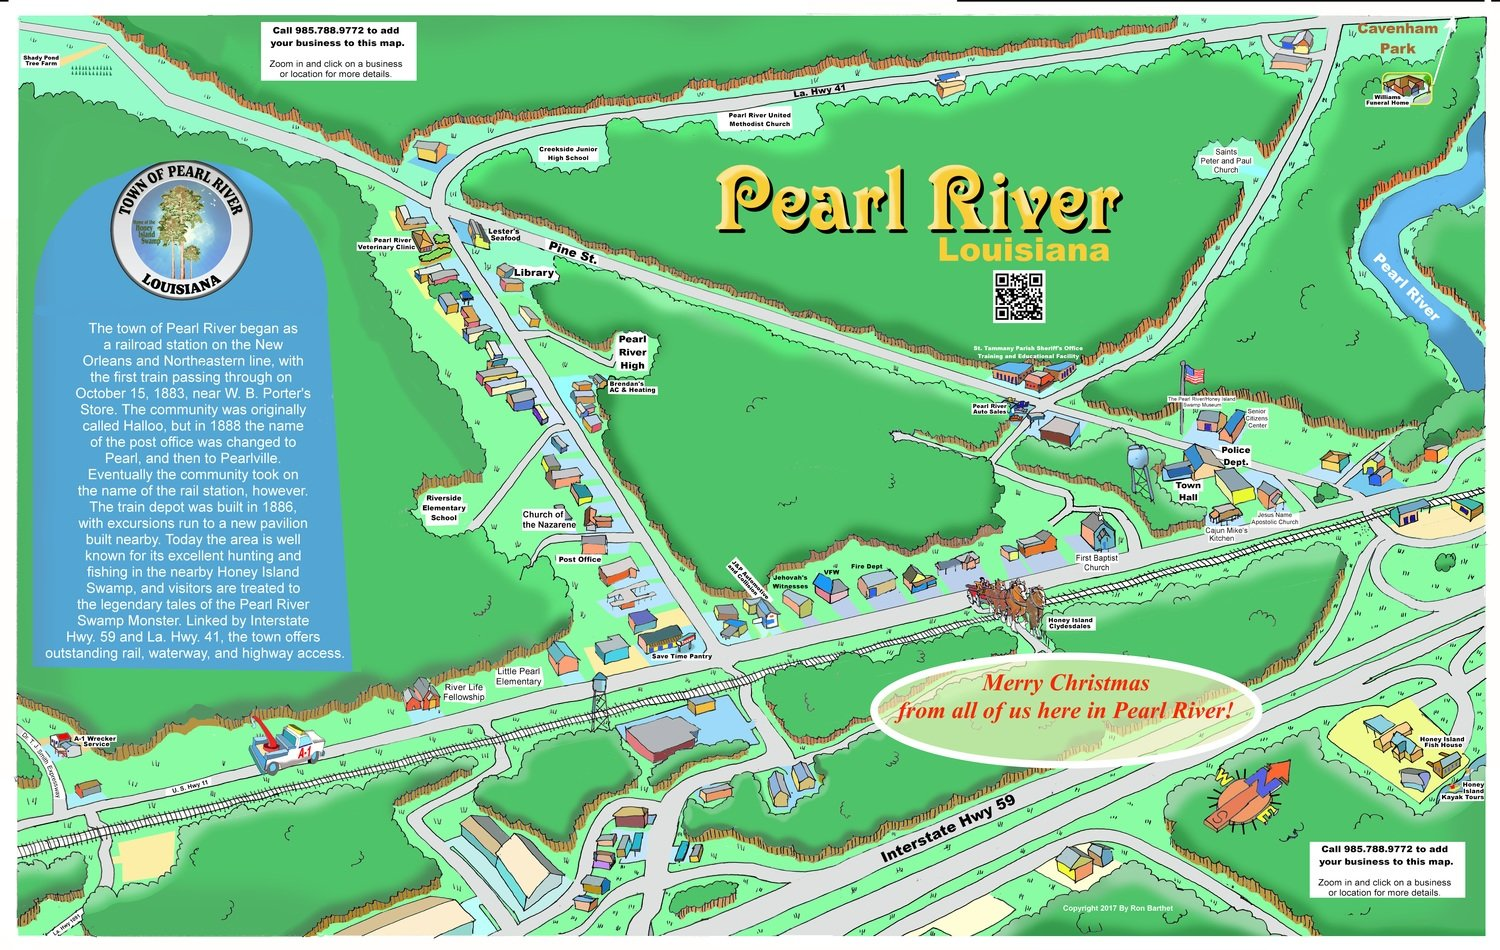 "11"" X 17"" Full Color Caricature Rendering of Pearl River, LA"